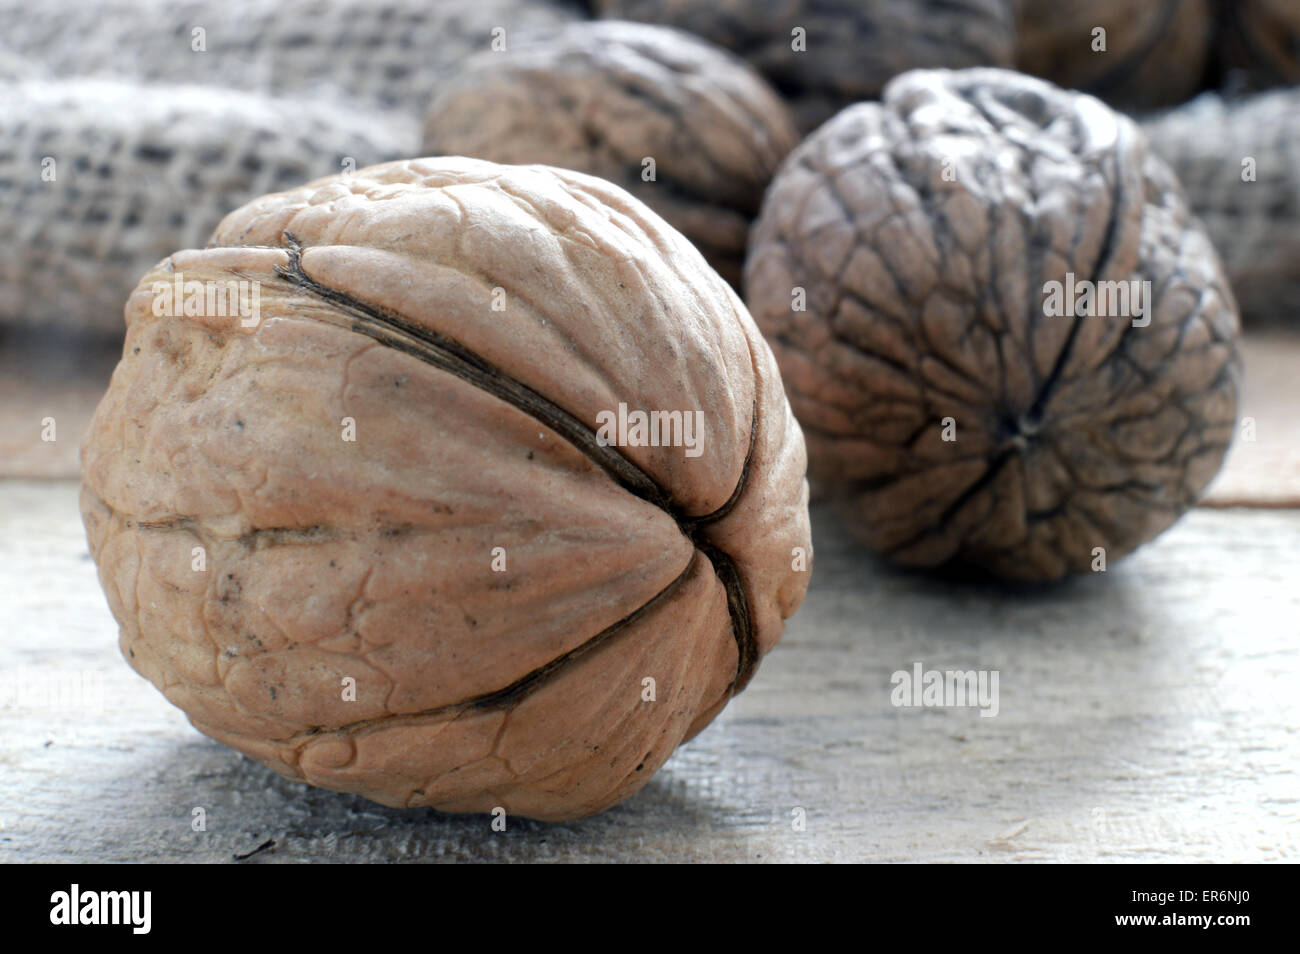 Some walnuts on a sack in a rustic kitchen, macro - Stock Image